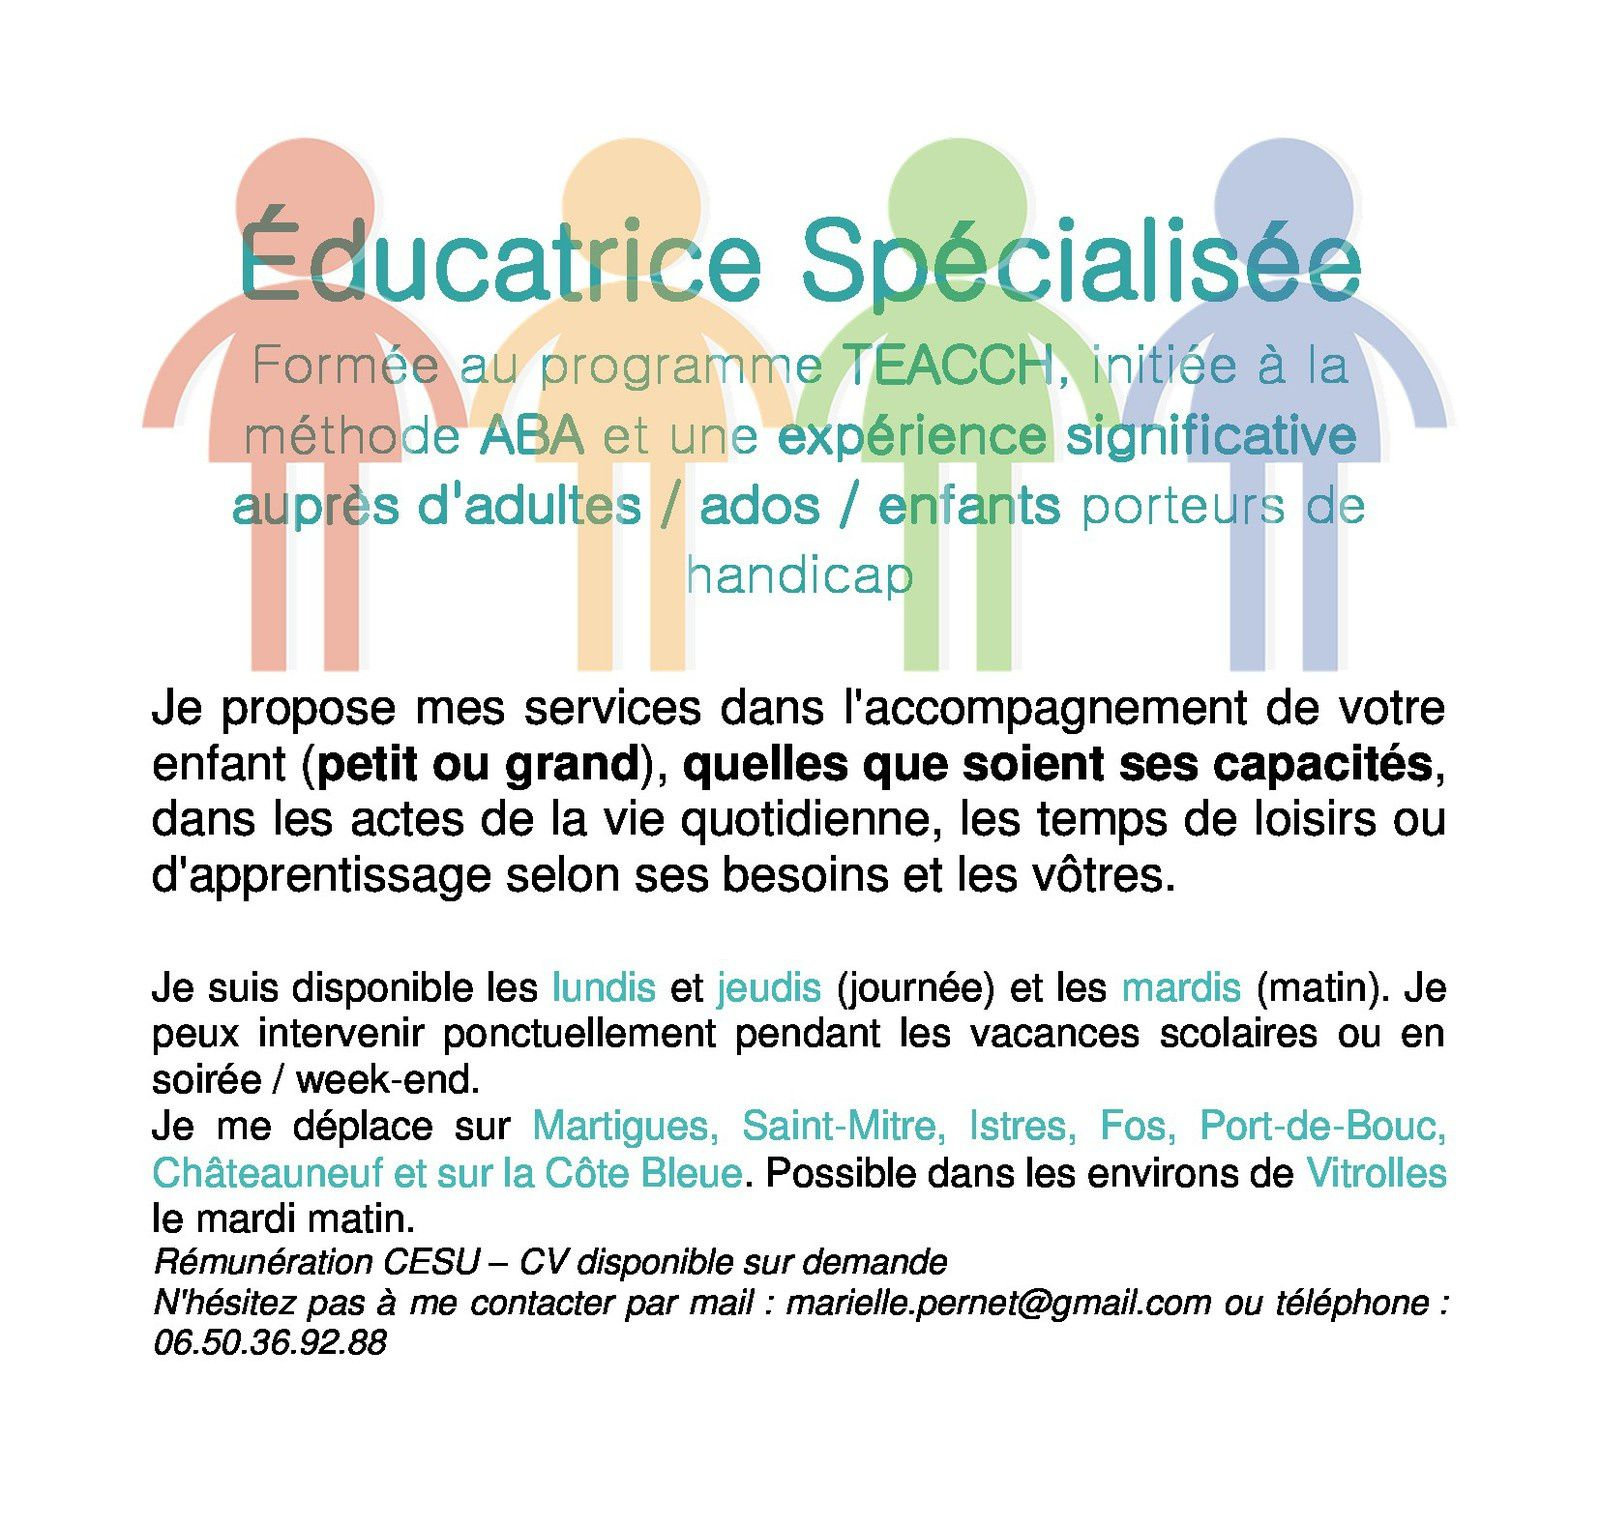 ANNONCE EDUCATRICE SPECIALISEE